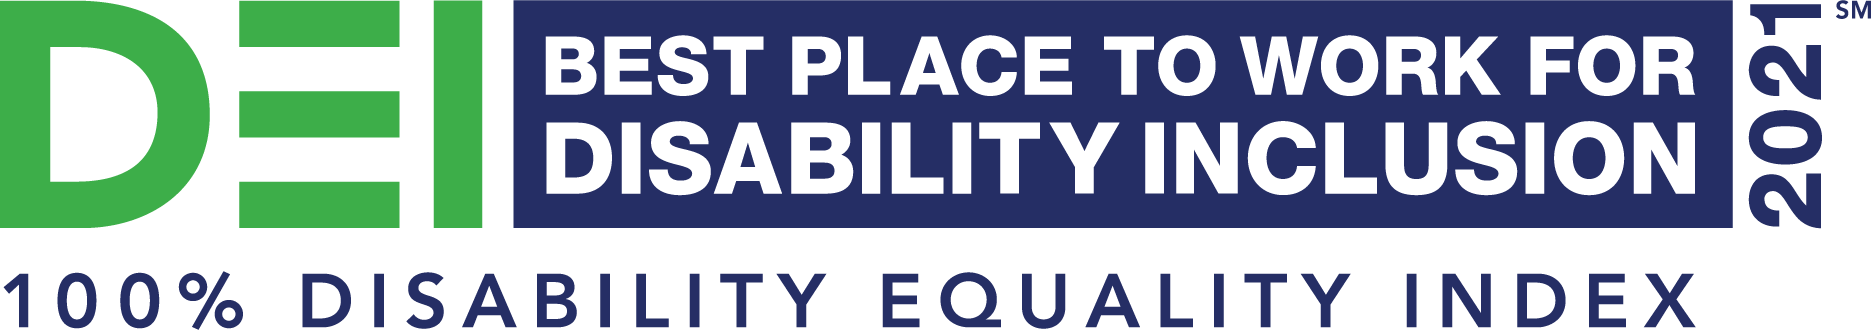 DEI Best Place to Work for Disability Inclusion